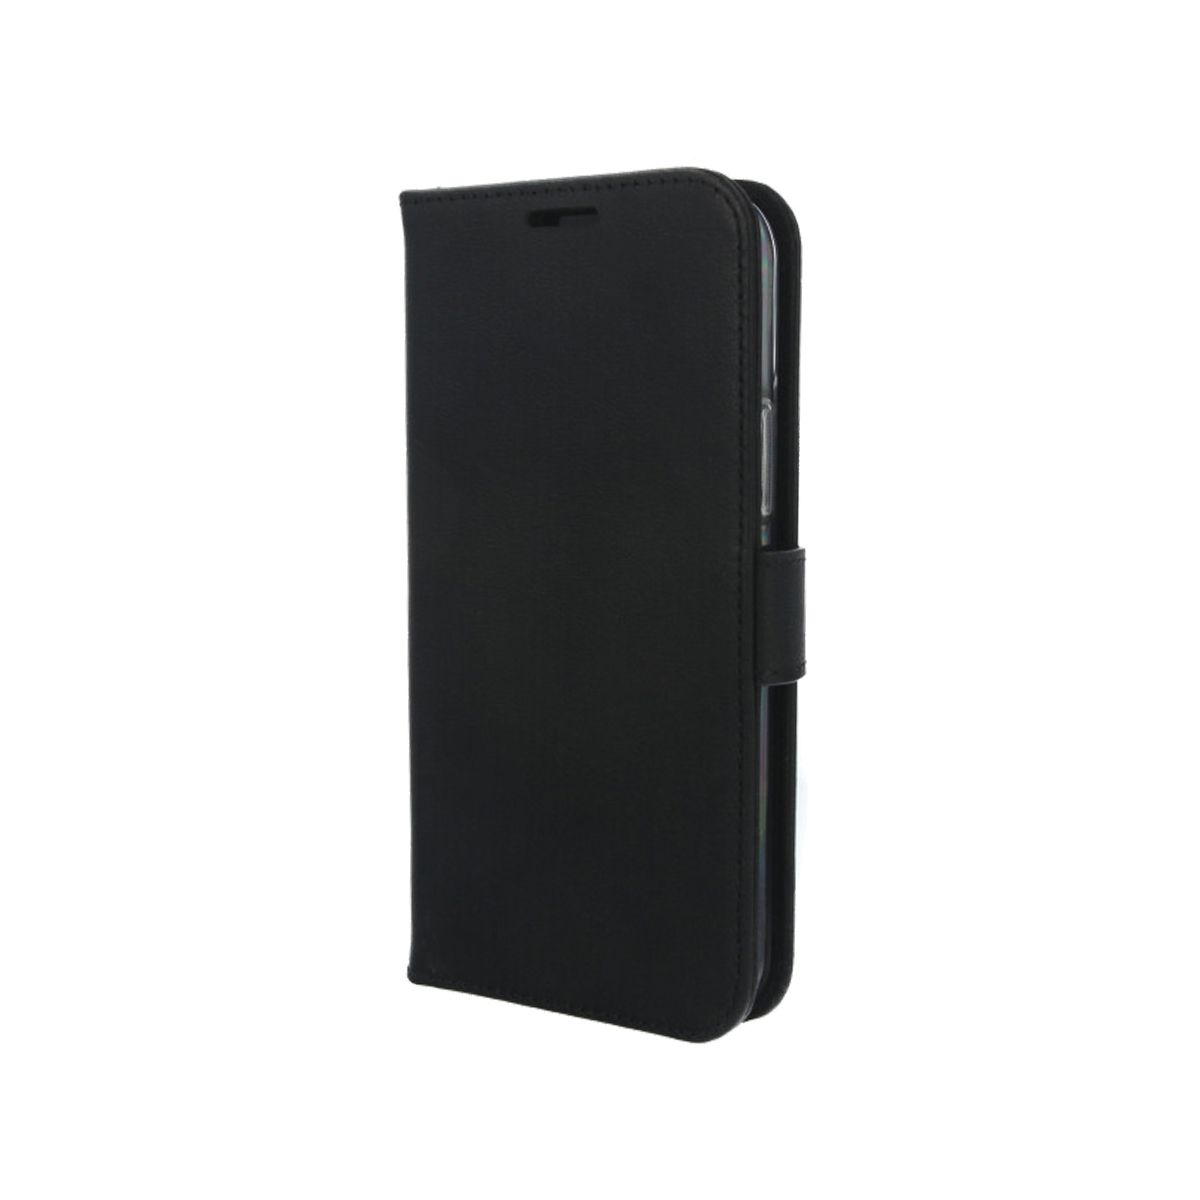 book case classic black iphone 12 pro max